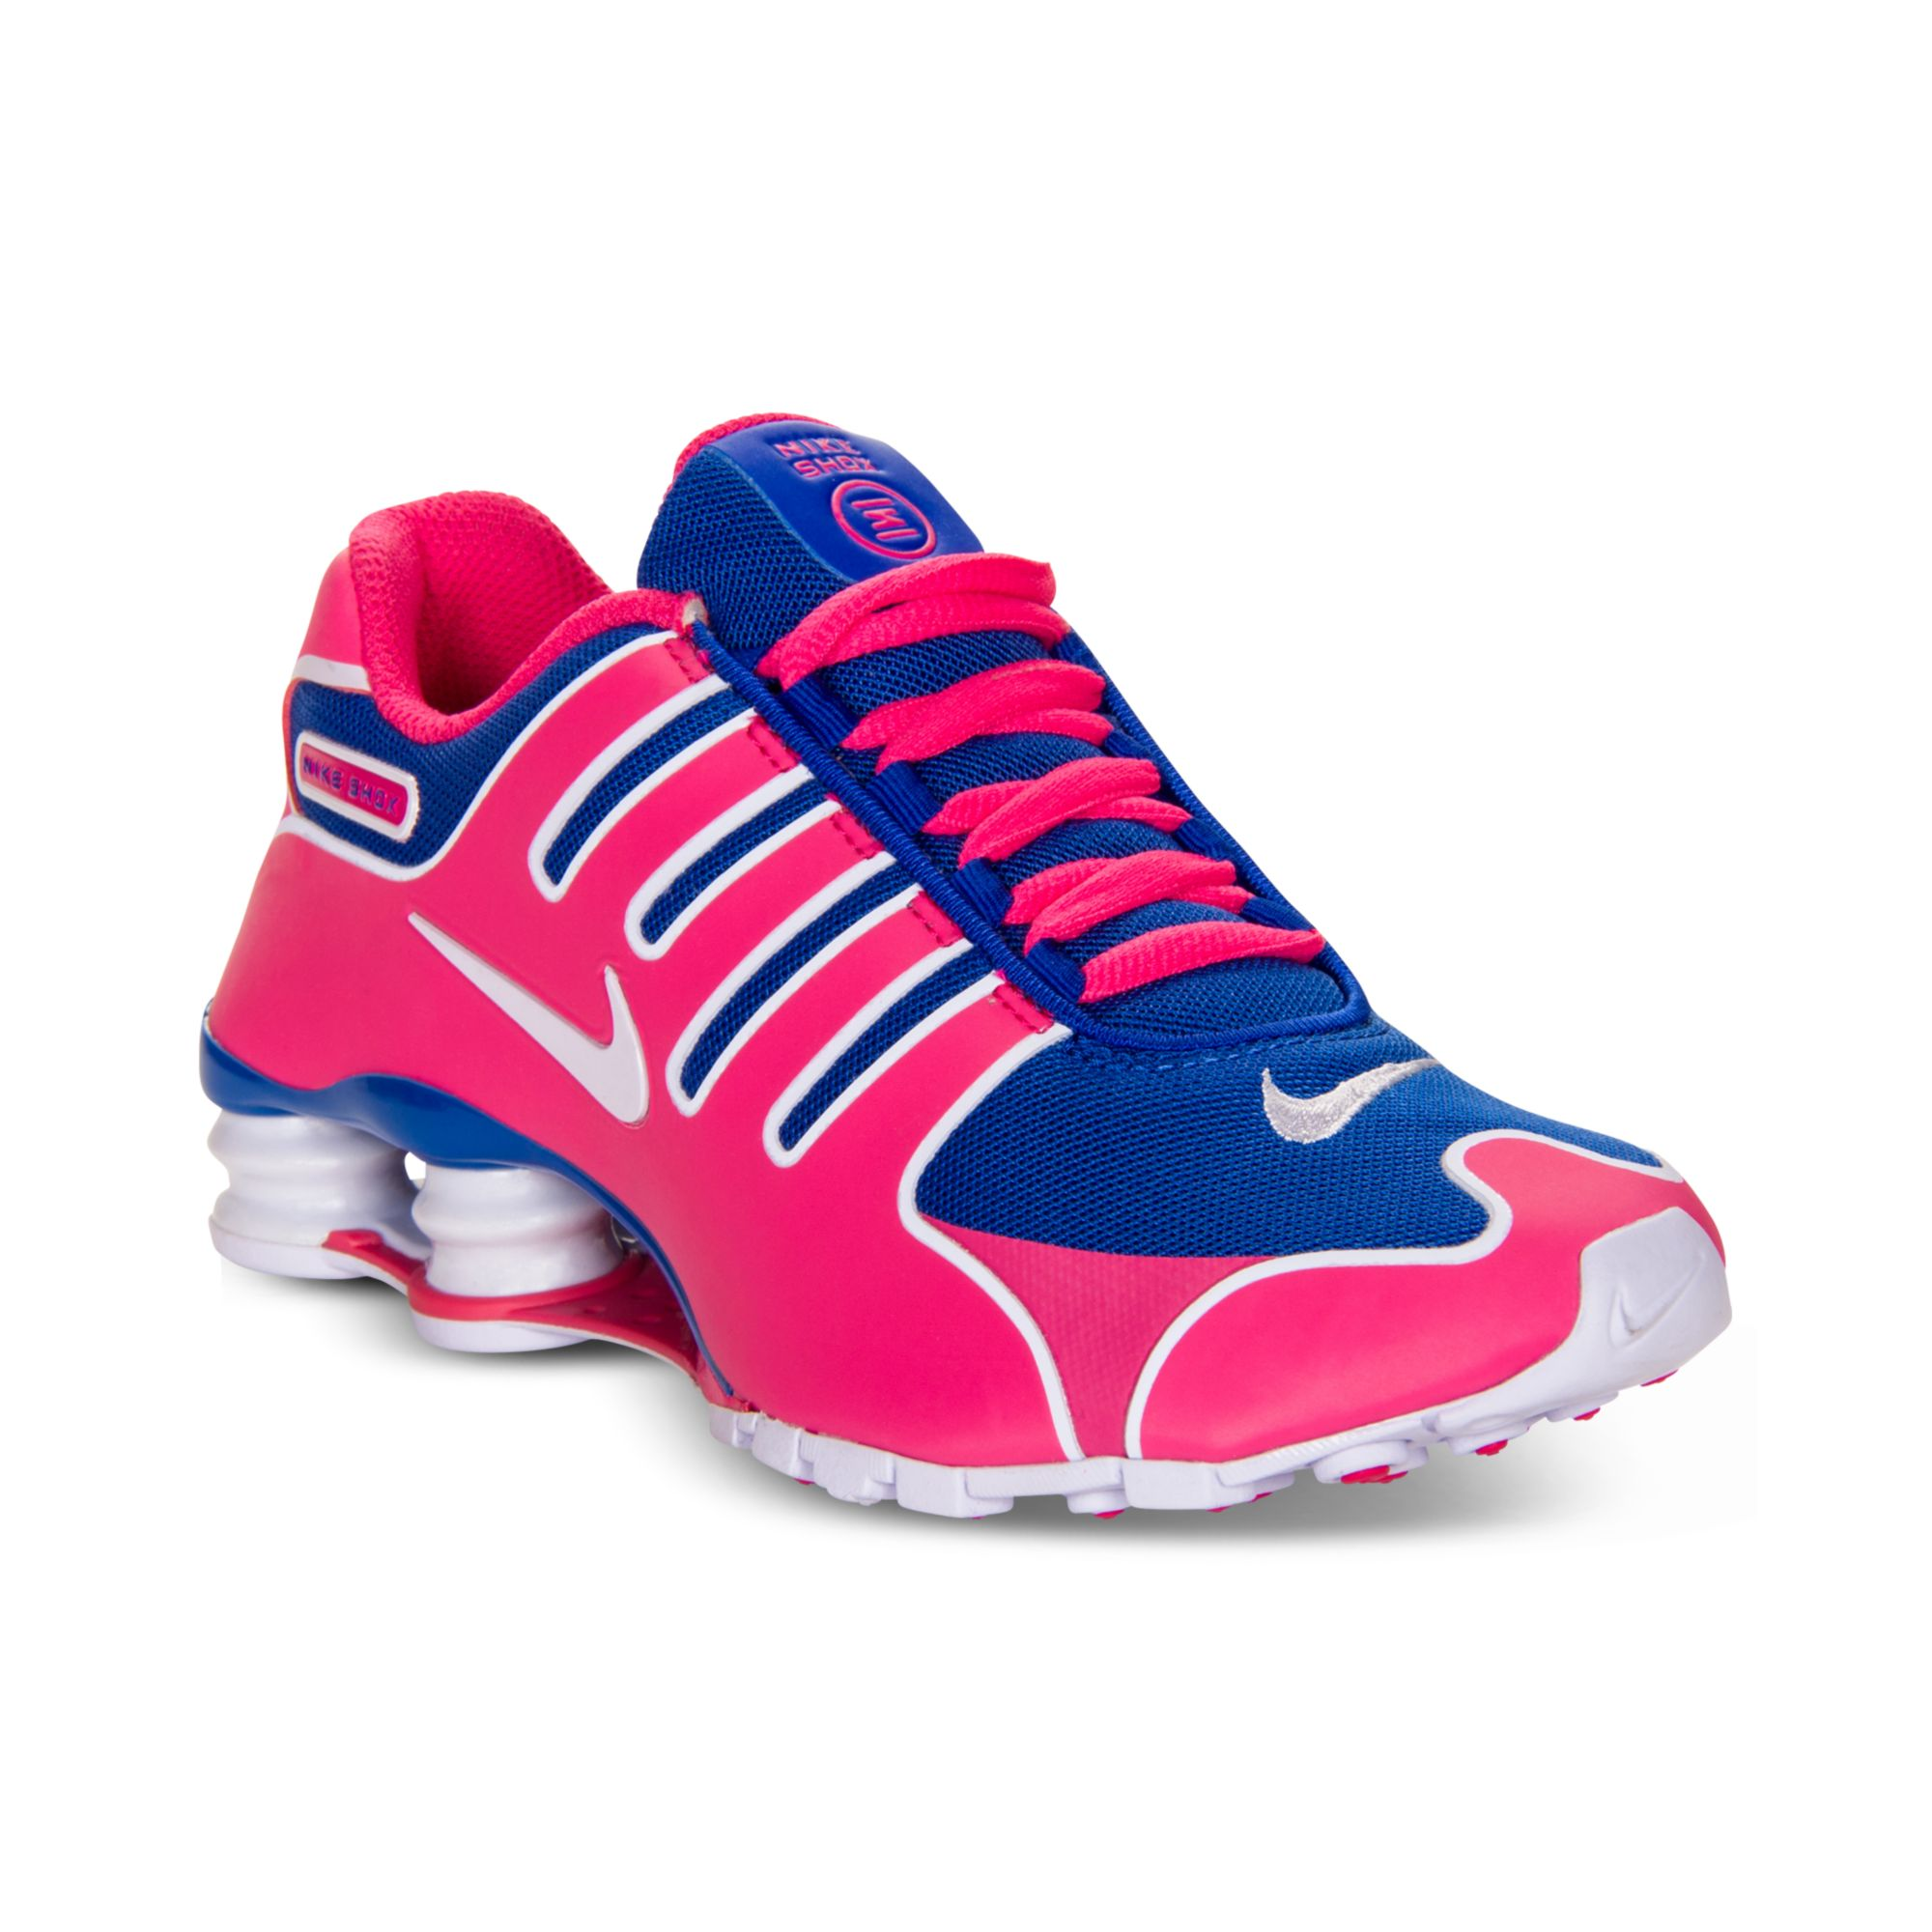 buy online 3d464 af4f0 top quality nike shox current laufschuhe mädchen grundschule grau rosa groß  4c8df 34447  reduced lyst nike shox nz ns running sneakers in pink 9ab22  3006e